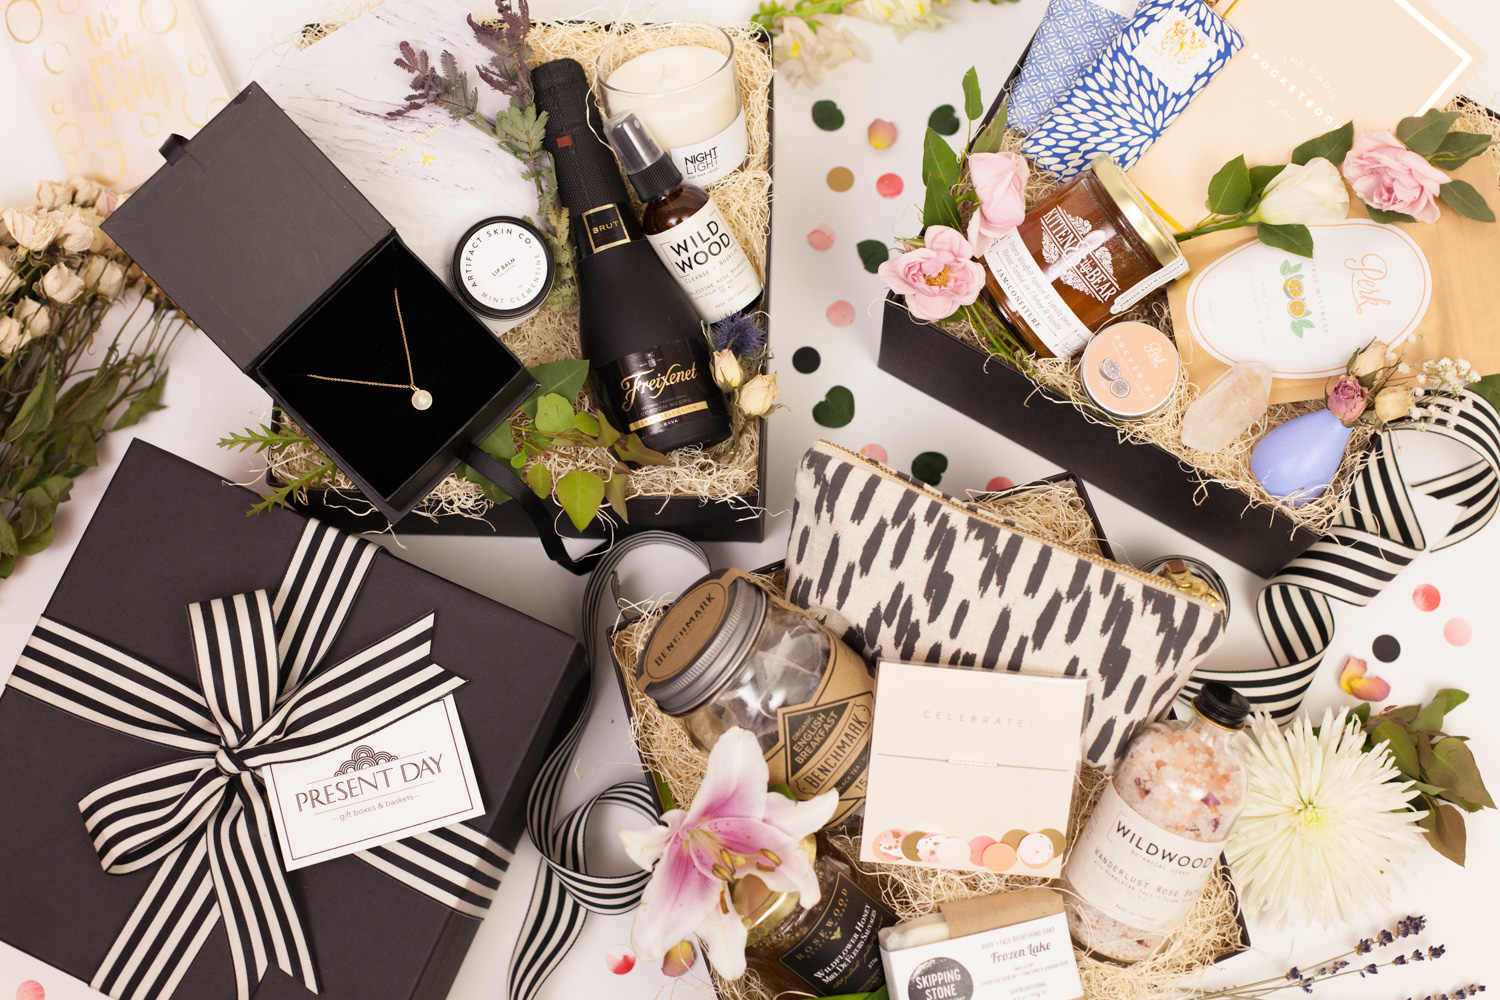 Tips Etiquette And Gifts For Your Bridal Party